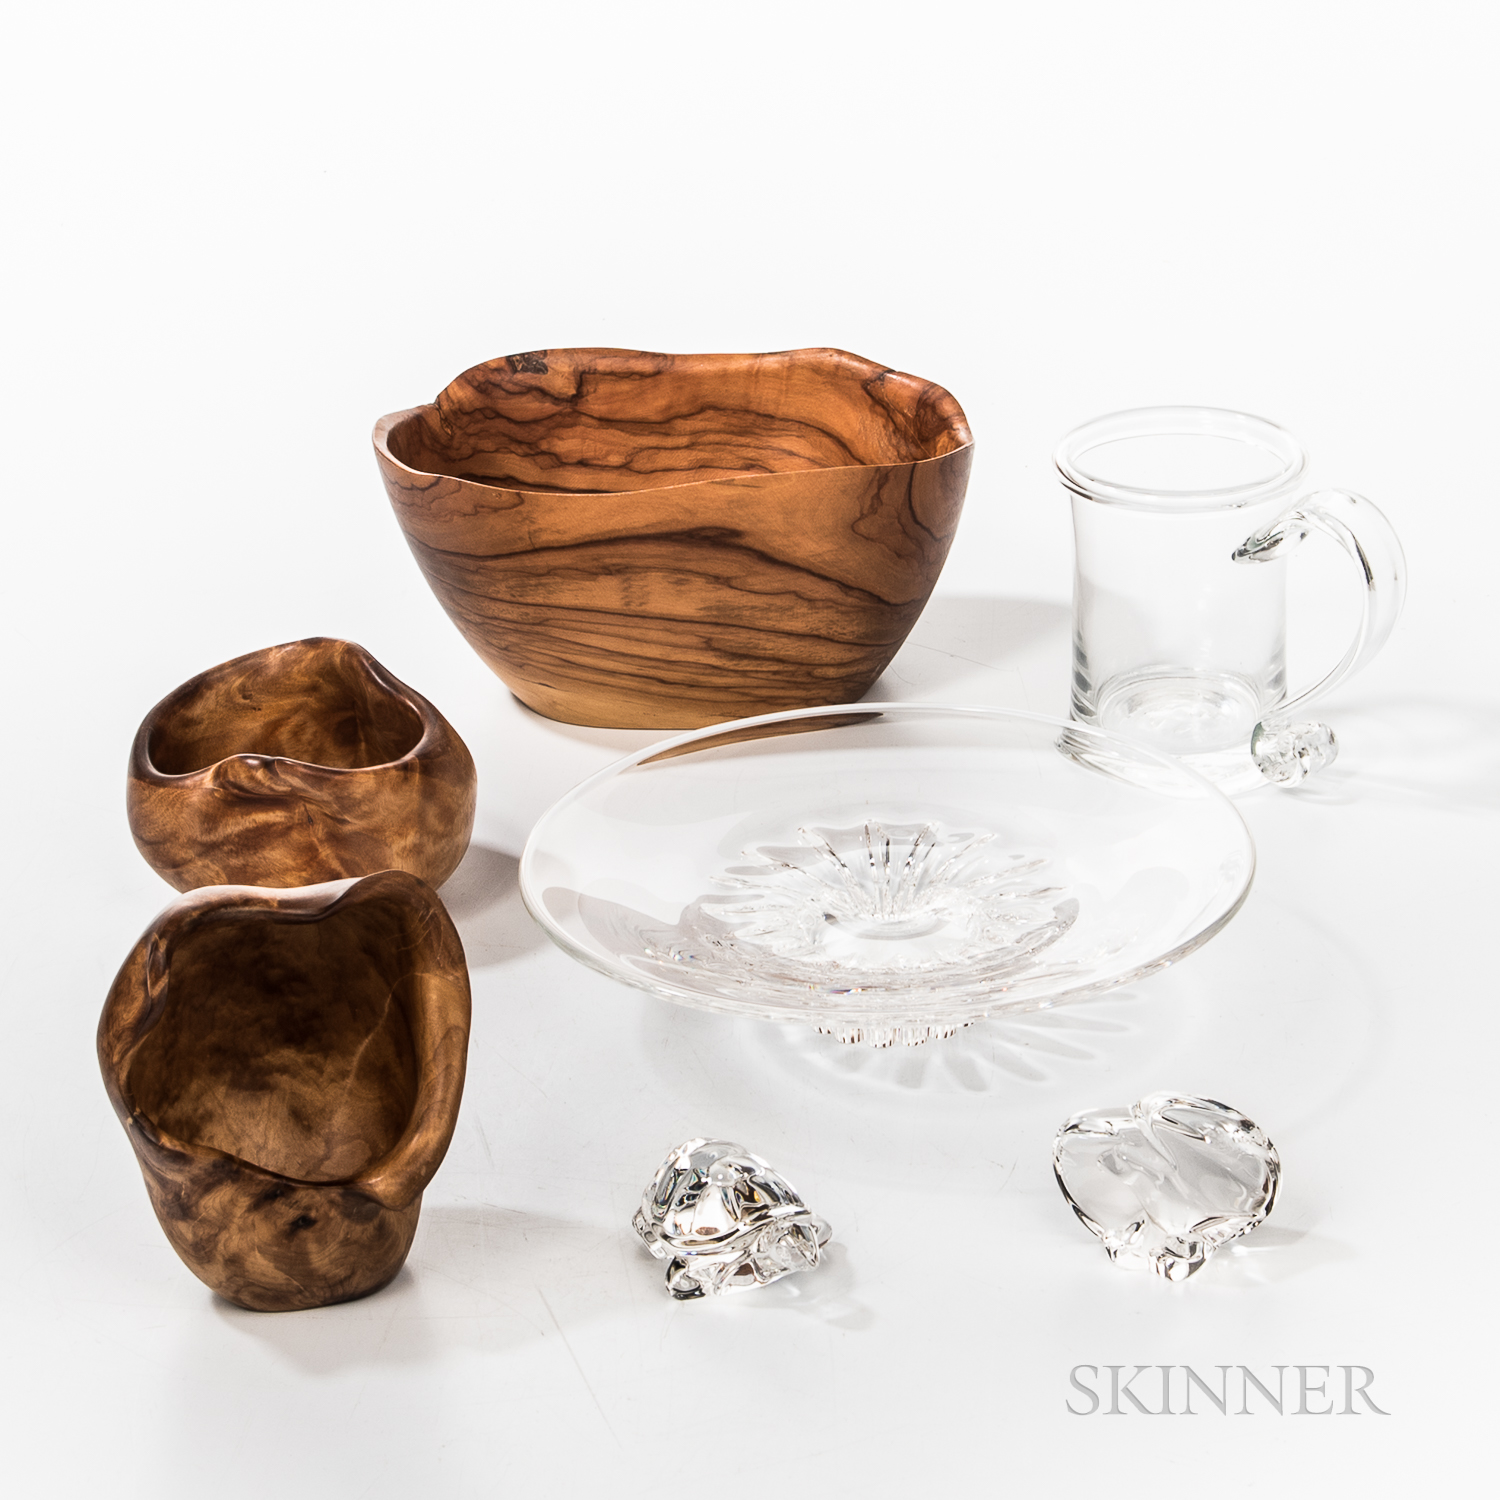 Steuben Colorless Glass Tazza and Two Animals, a Simon Pearce Mug, and Three Turned Wood Bowls.     Estimate $150-250